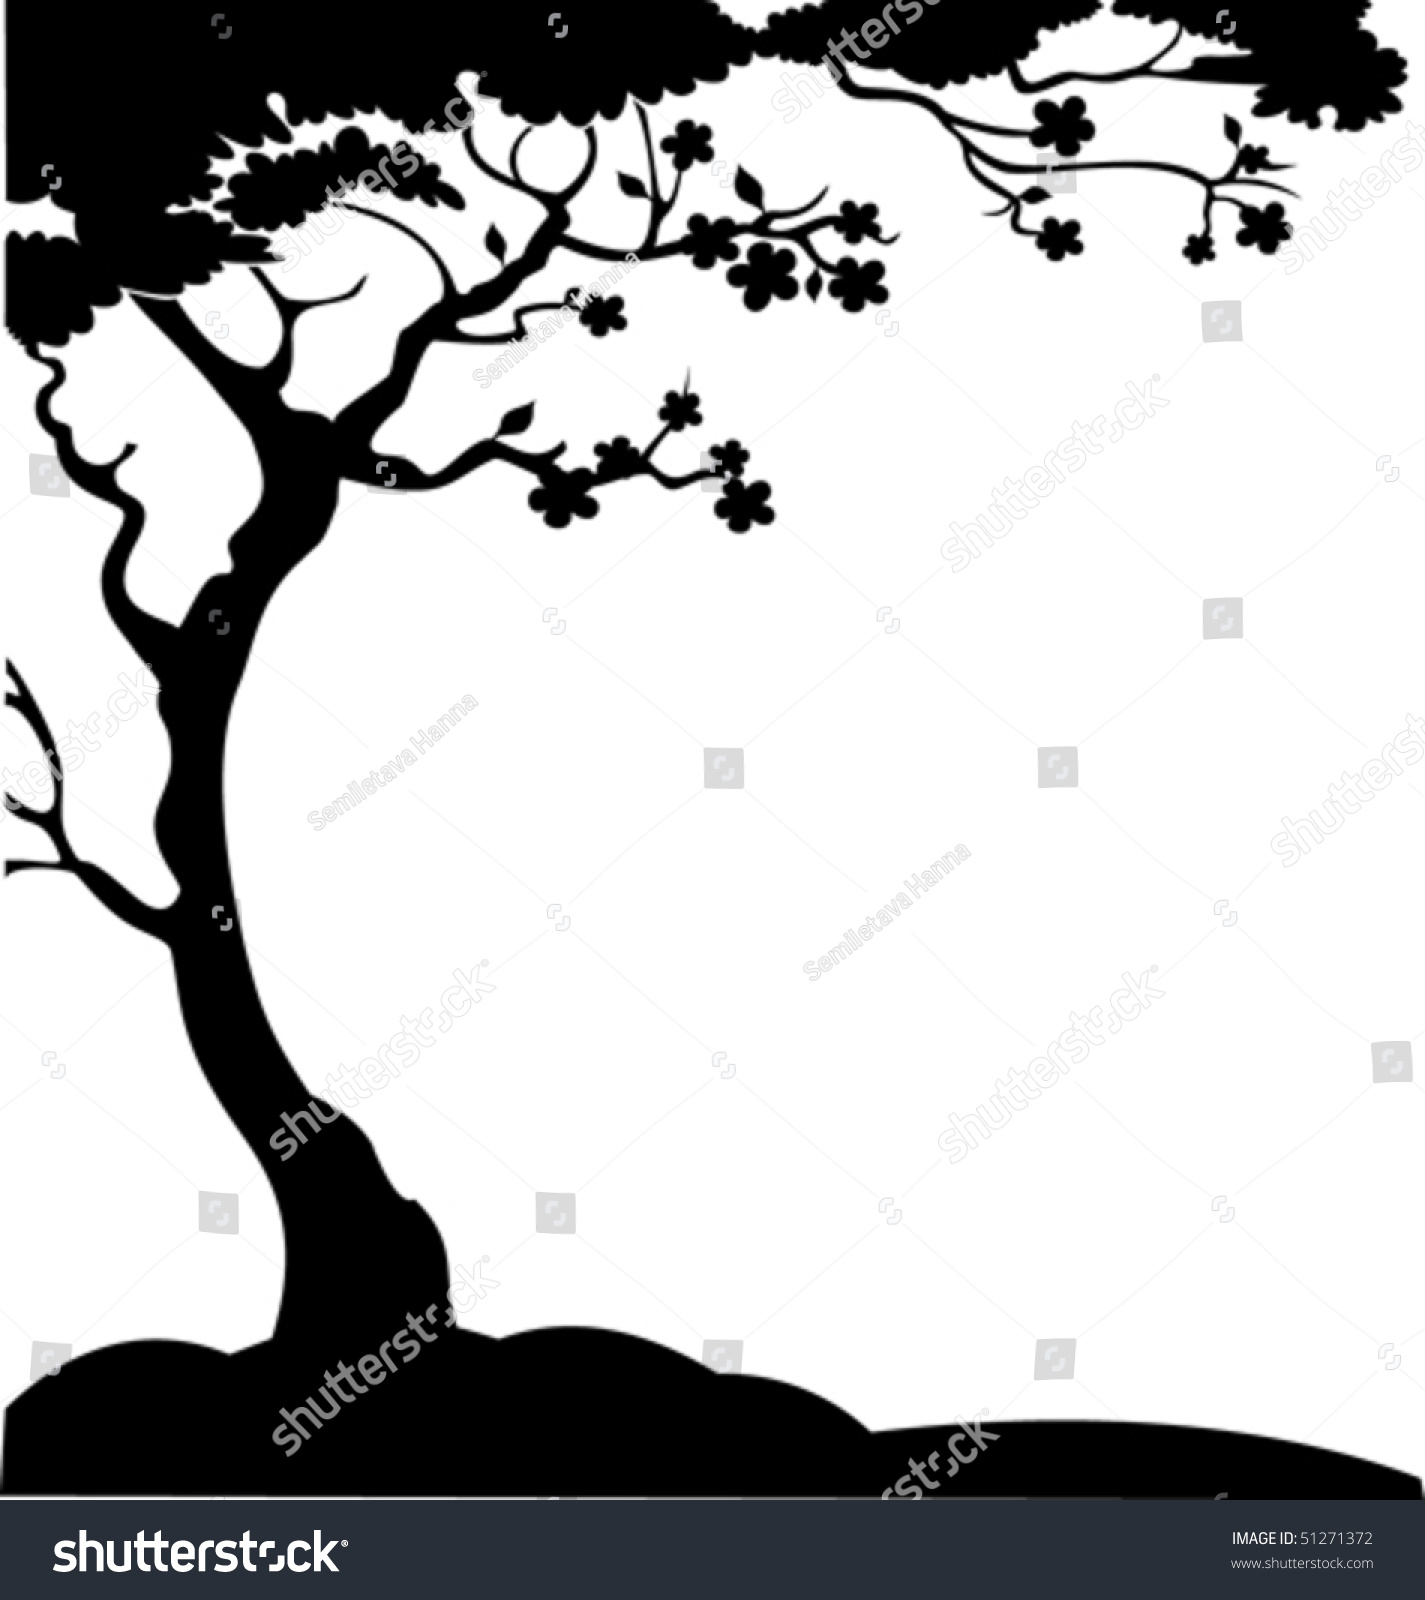 Cherry Blossom Tree Black And White: Illustration Cherry Tree Flowers Silhouette On Stock